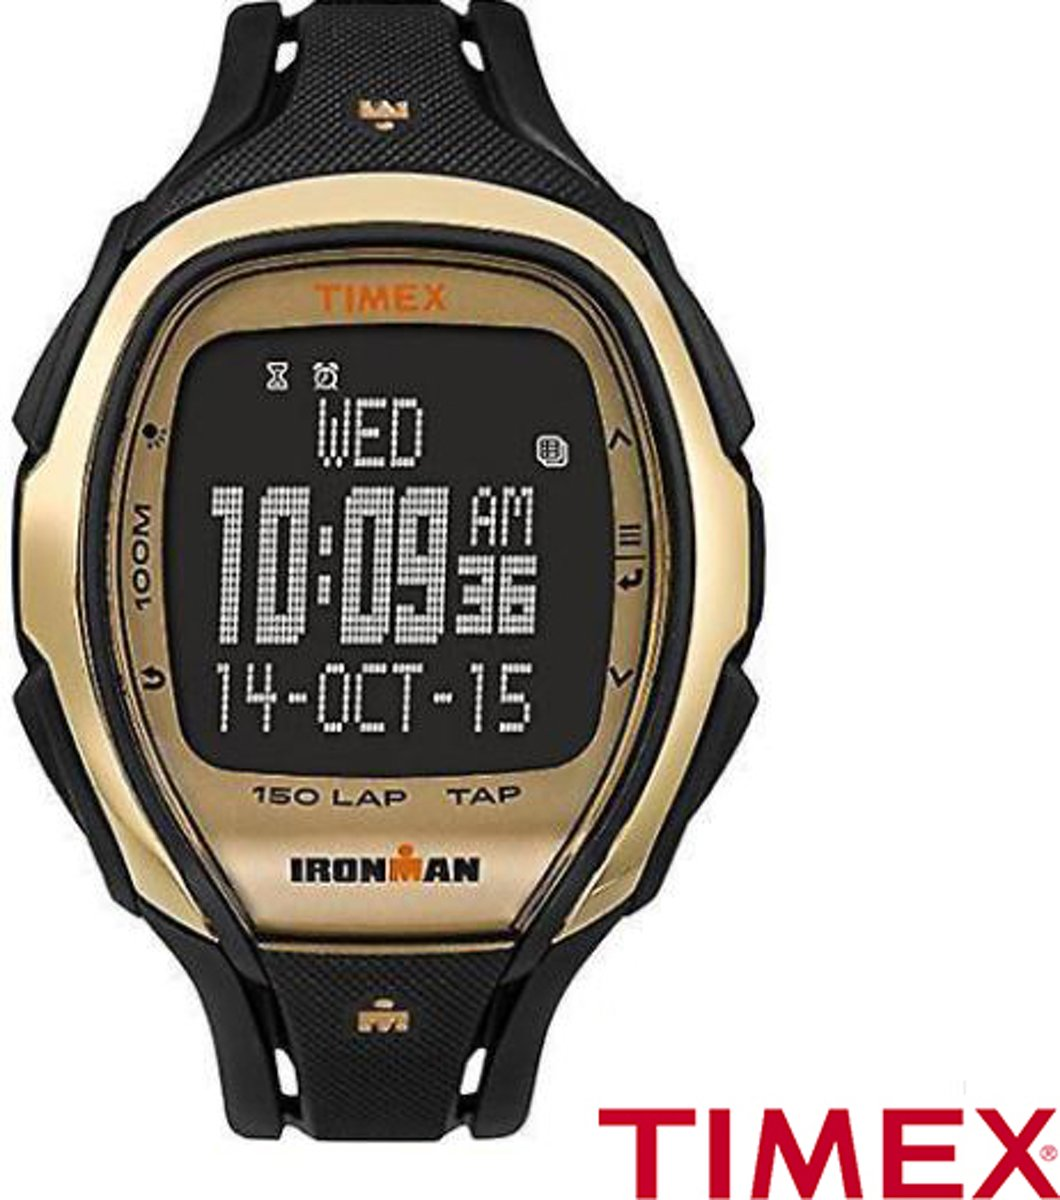 Timex Ironman Tapscreen 150 Color Block (TW5M05900) - Sporthorloge - 46mm - Gold kopen